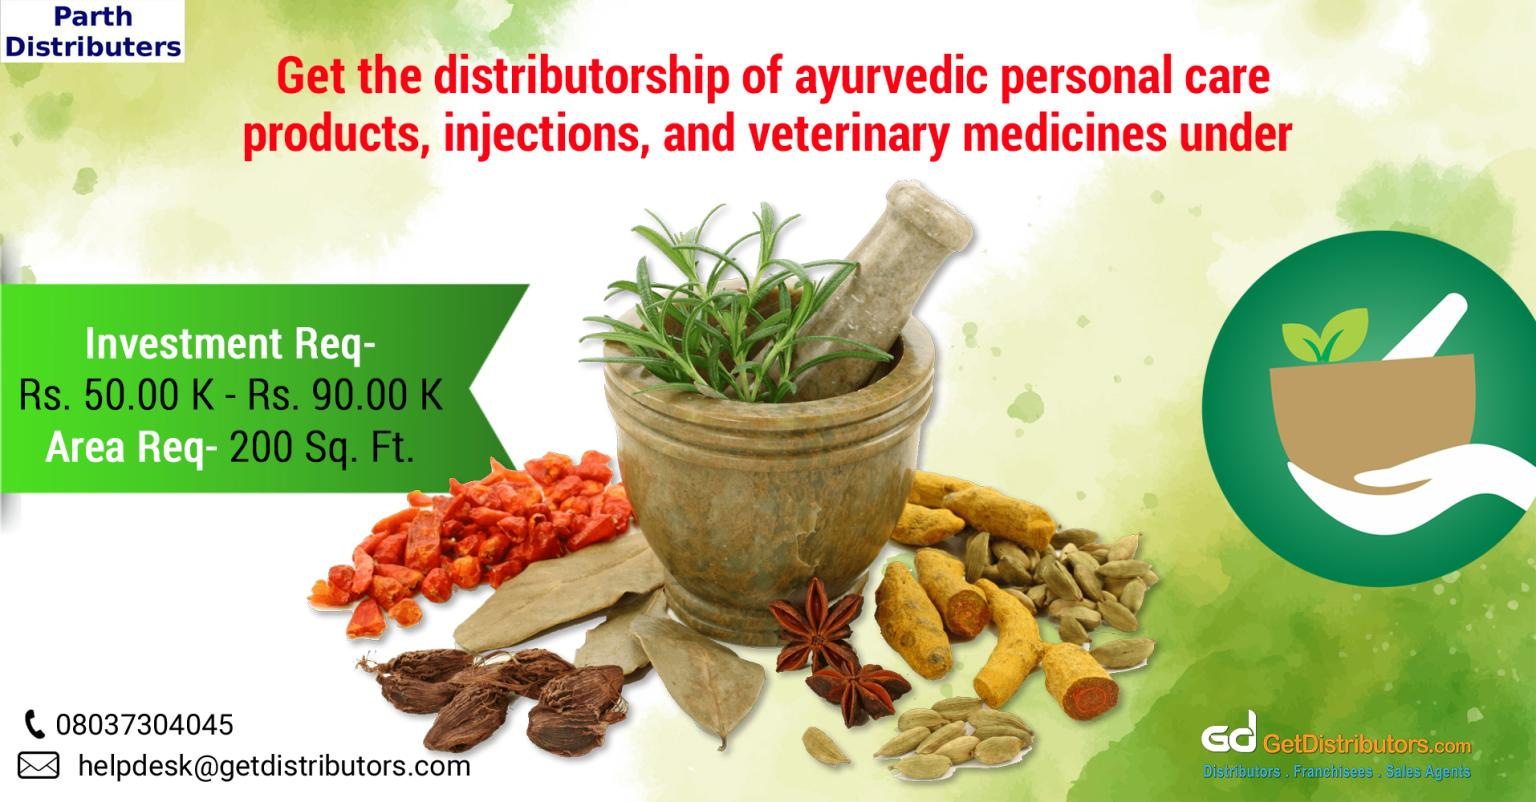 Premium quality ayurvedic products and veterinary medicines for distribution